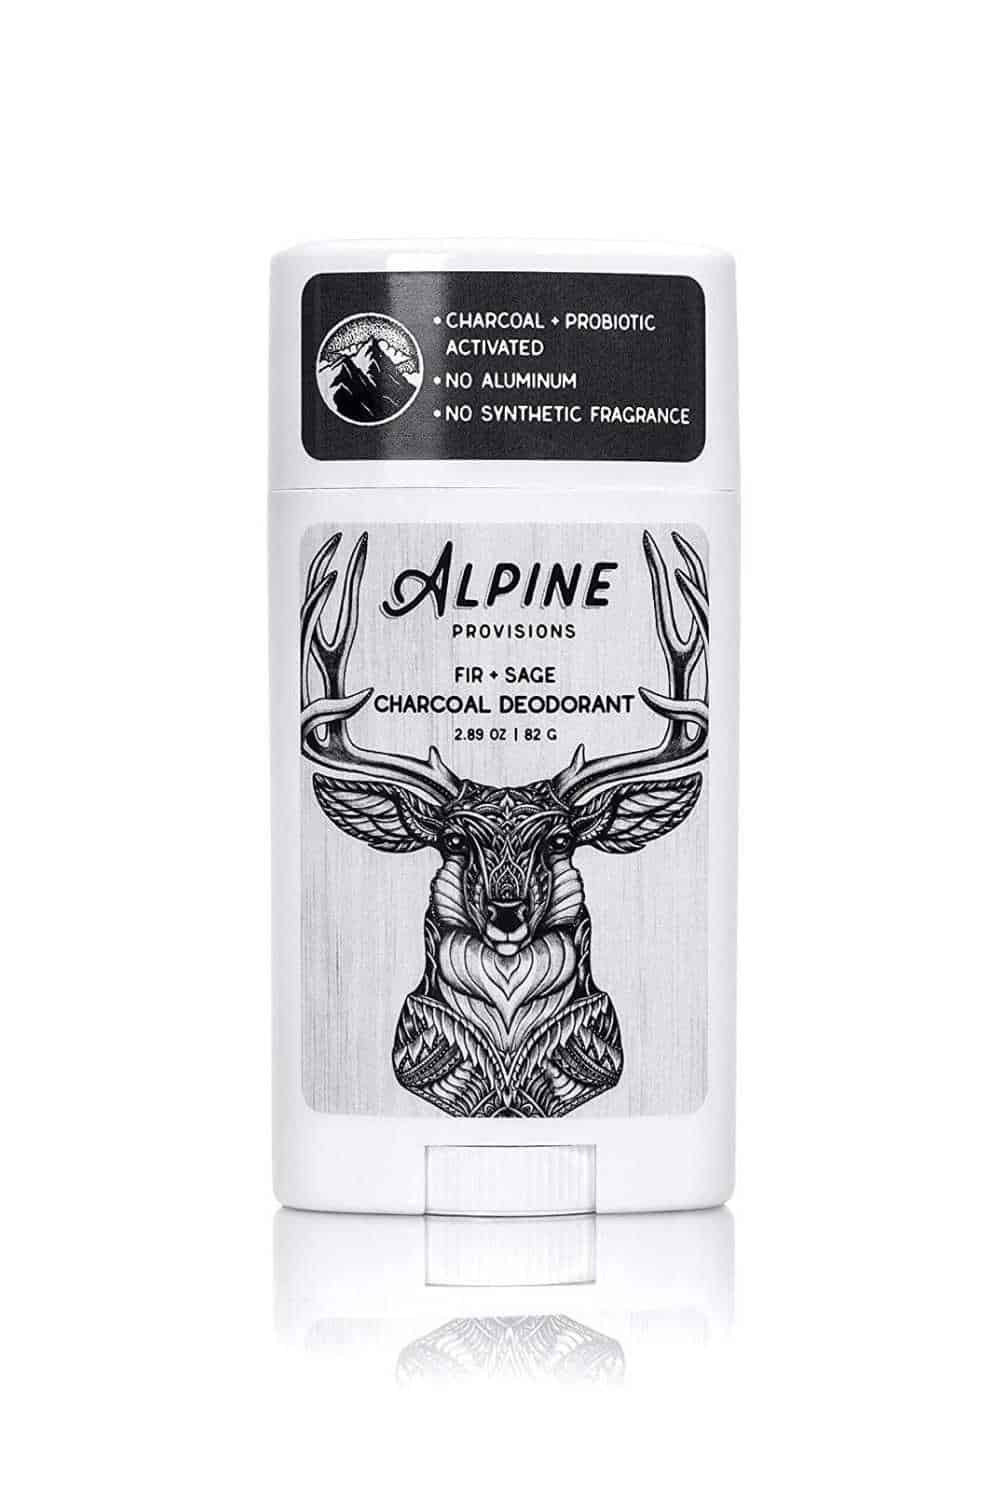 The ethical personal care market has exploded with options in the last few years which is great. The problem though, is trying to find eco friendly deodorants that are effective. So, we've made a list of our favorites that are fit for purpose! Image by Alpine Provisions #ecofriendlydeodorant #sustainablejungle